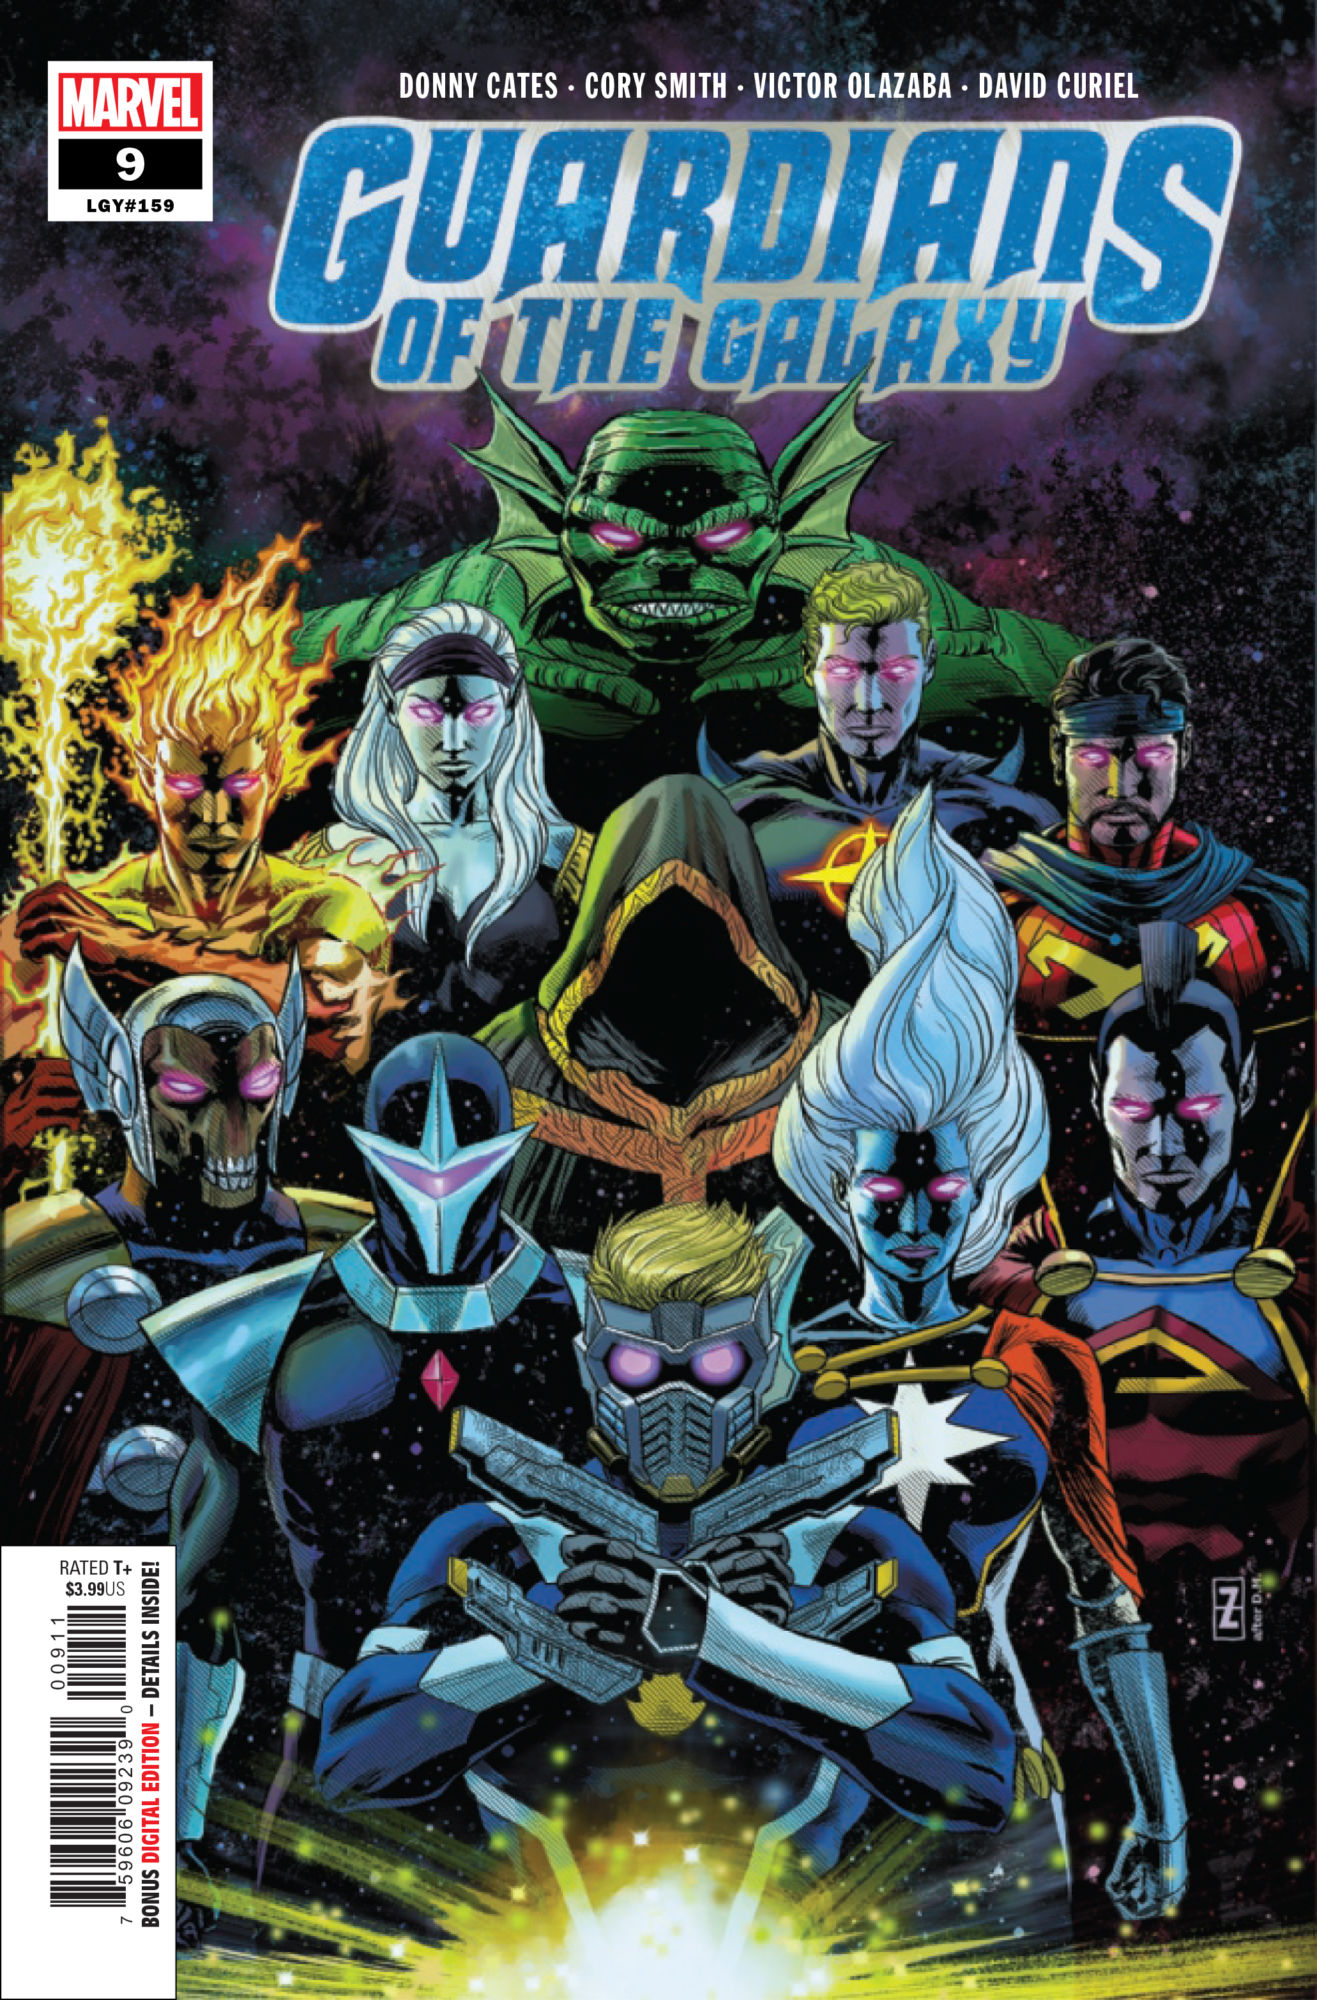 The Death of the Marvel Universe in This Guardians of the Galaxy #9 Preview